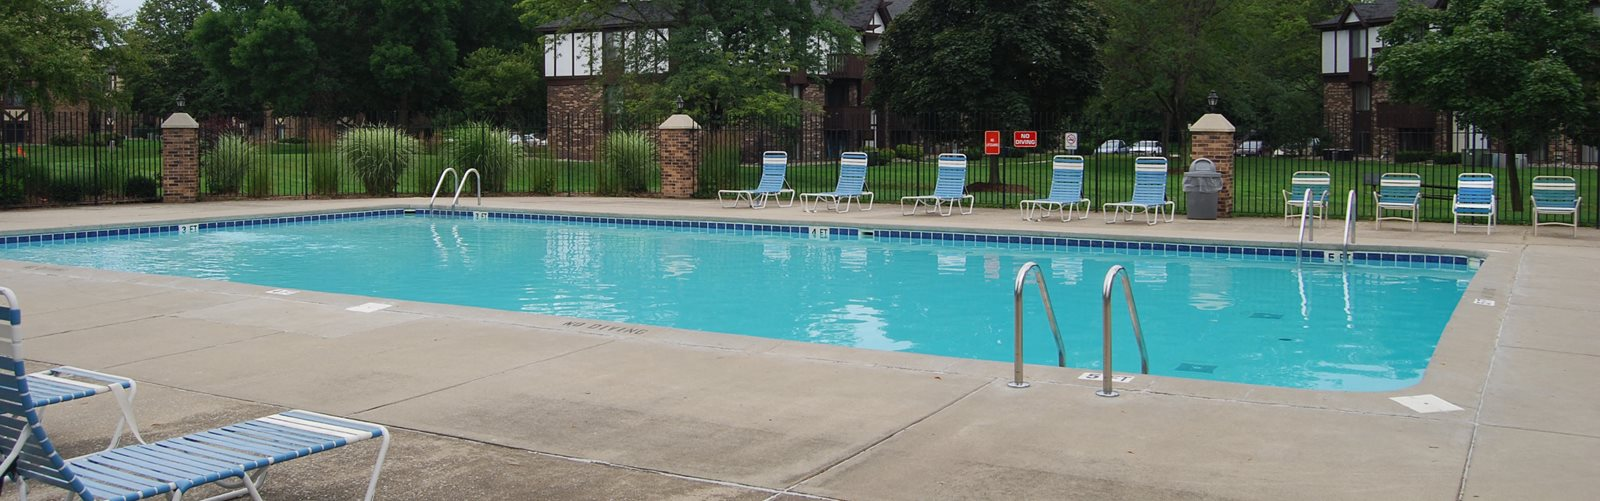 Pool at Normandy Village Apartments, Indiana, 46360